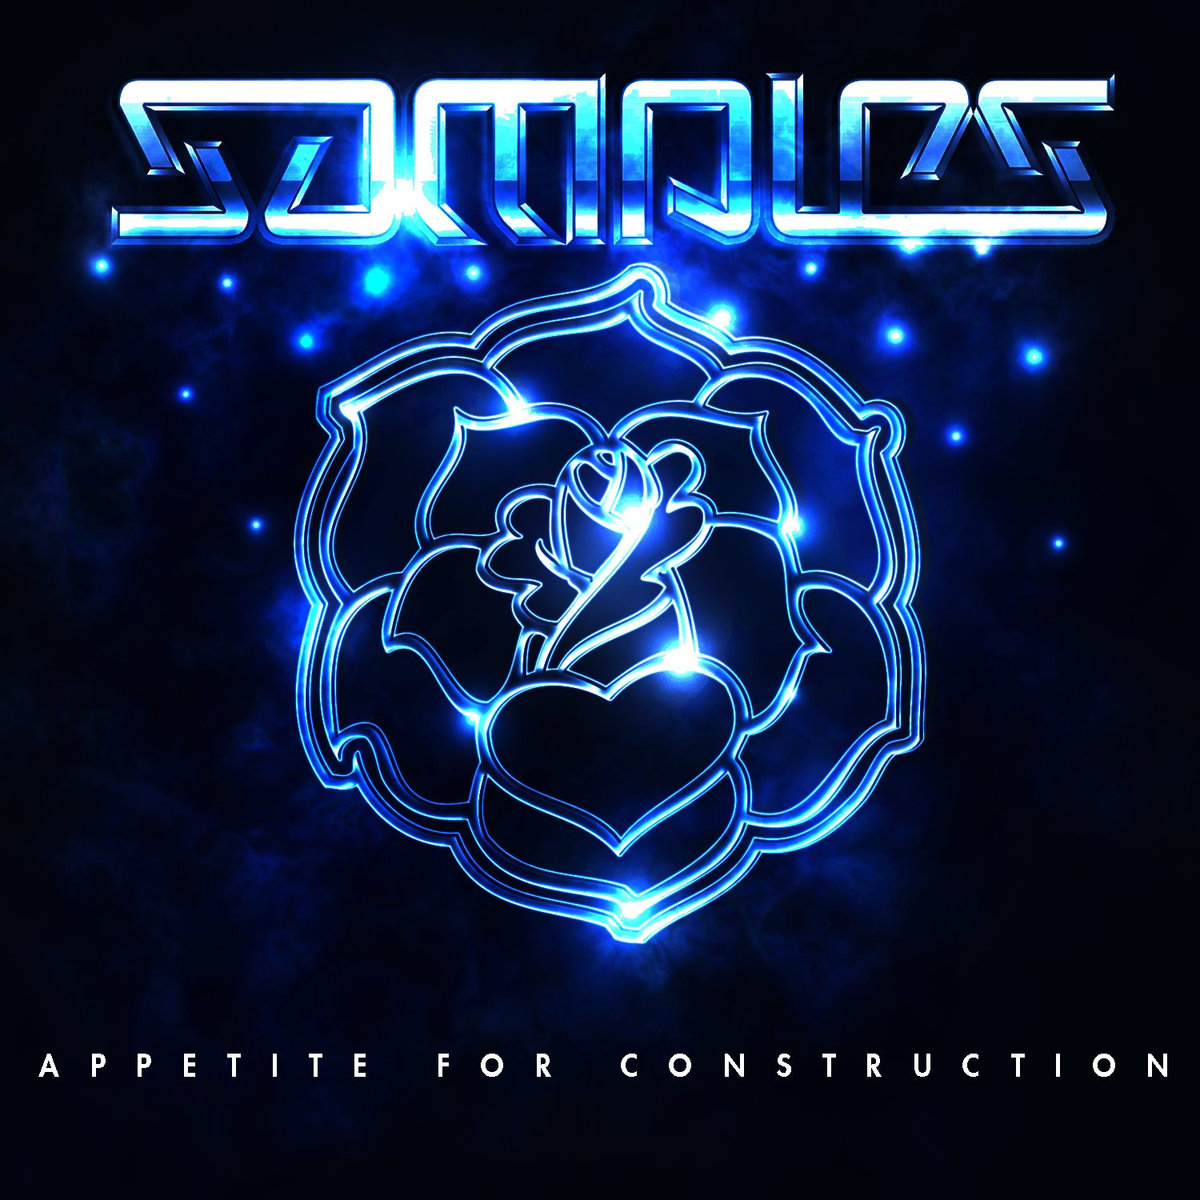 Samples - Limitless @ 'Appetite for Construction' album (electronic, dubstep)